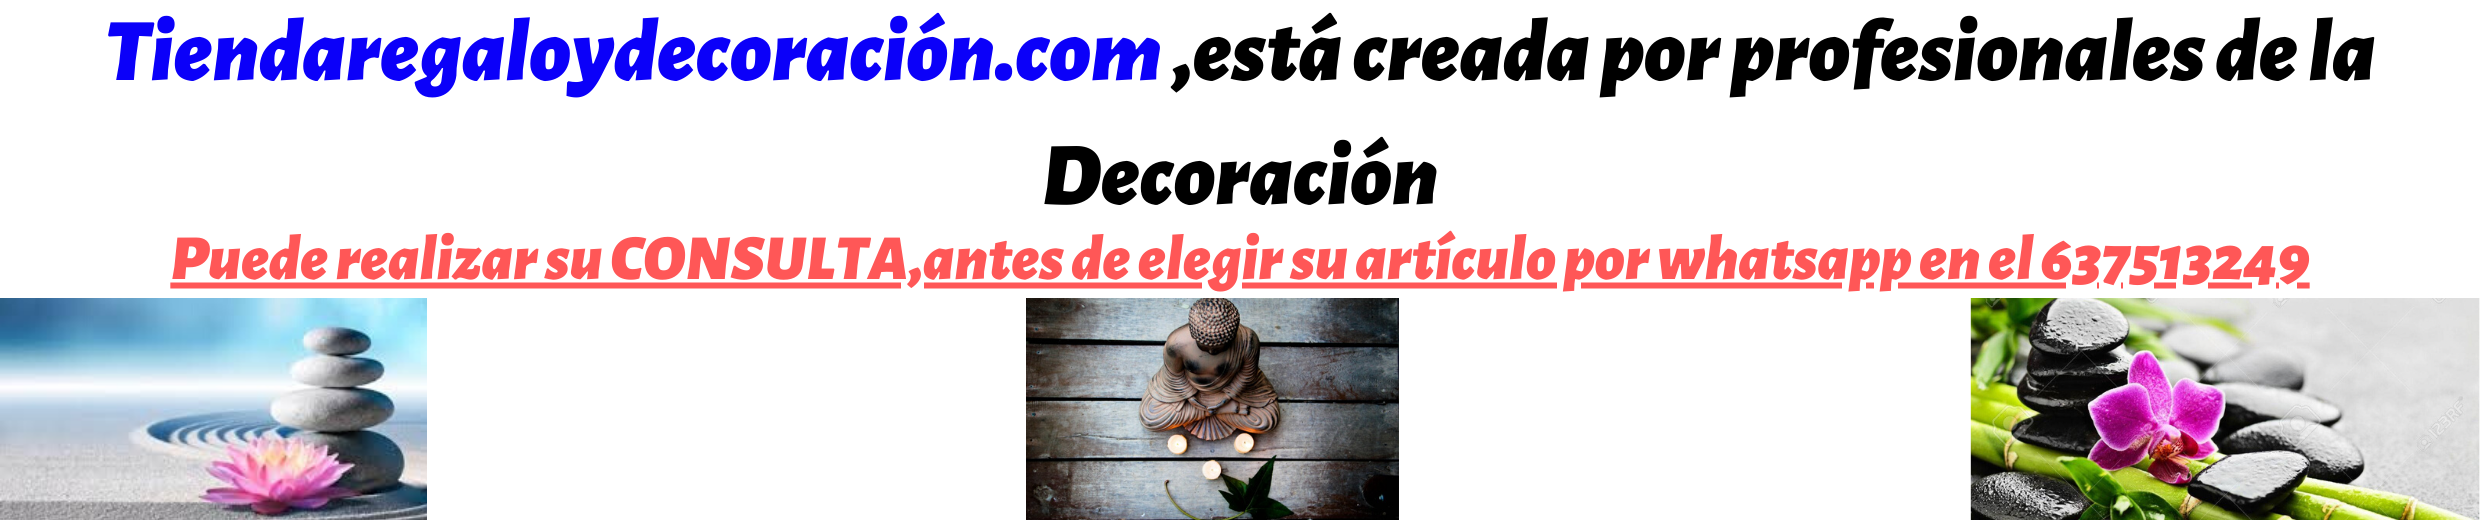 https://tiendaregaloydecoracion.com/modules/iqithtmlandbanners/uploads/images/5e2ad9b22954f.jpg